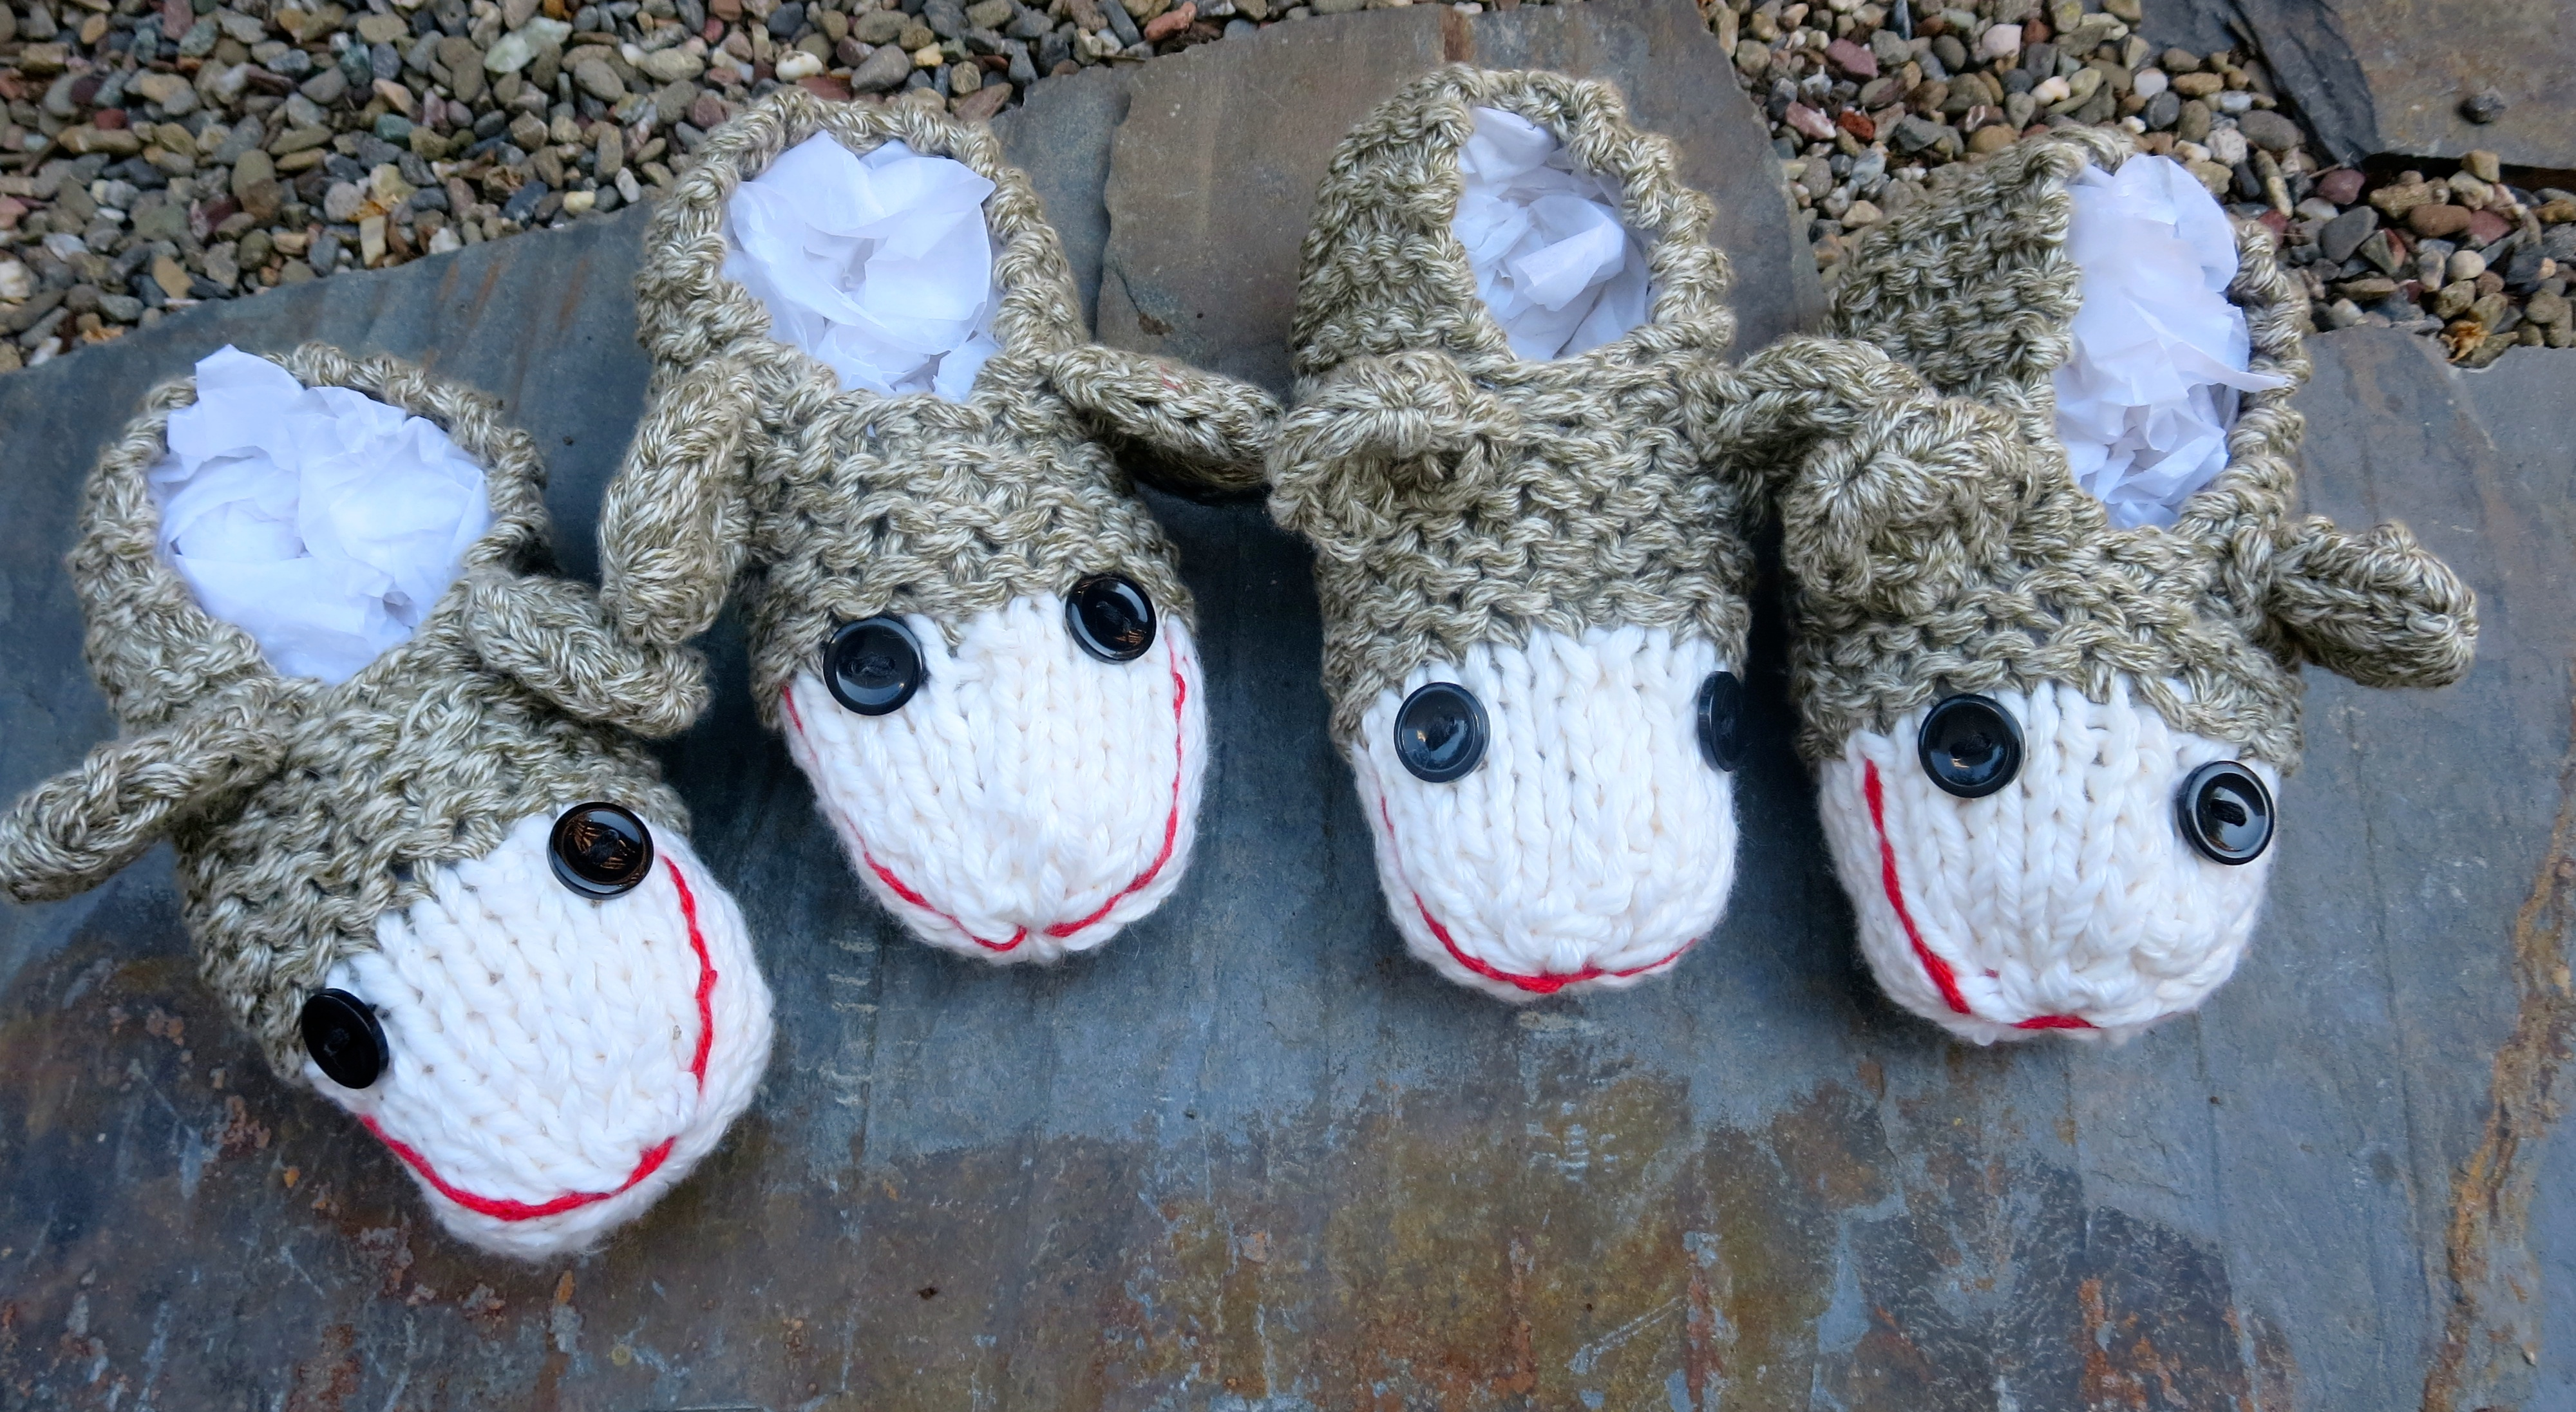 Four Little Sock Monkey Slippers sitting on a Ledge - Wool Free and ...